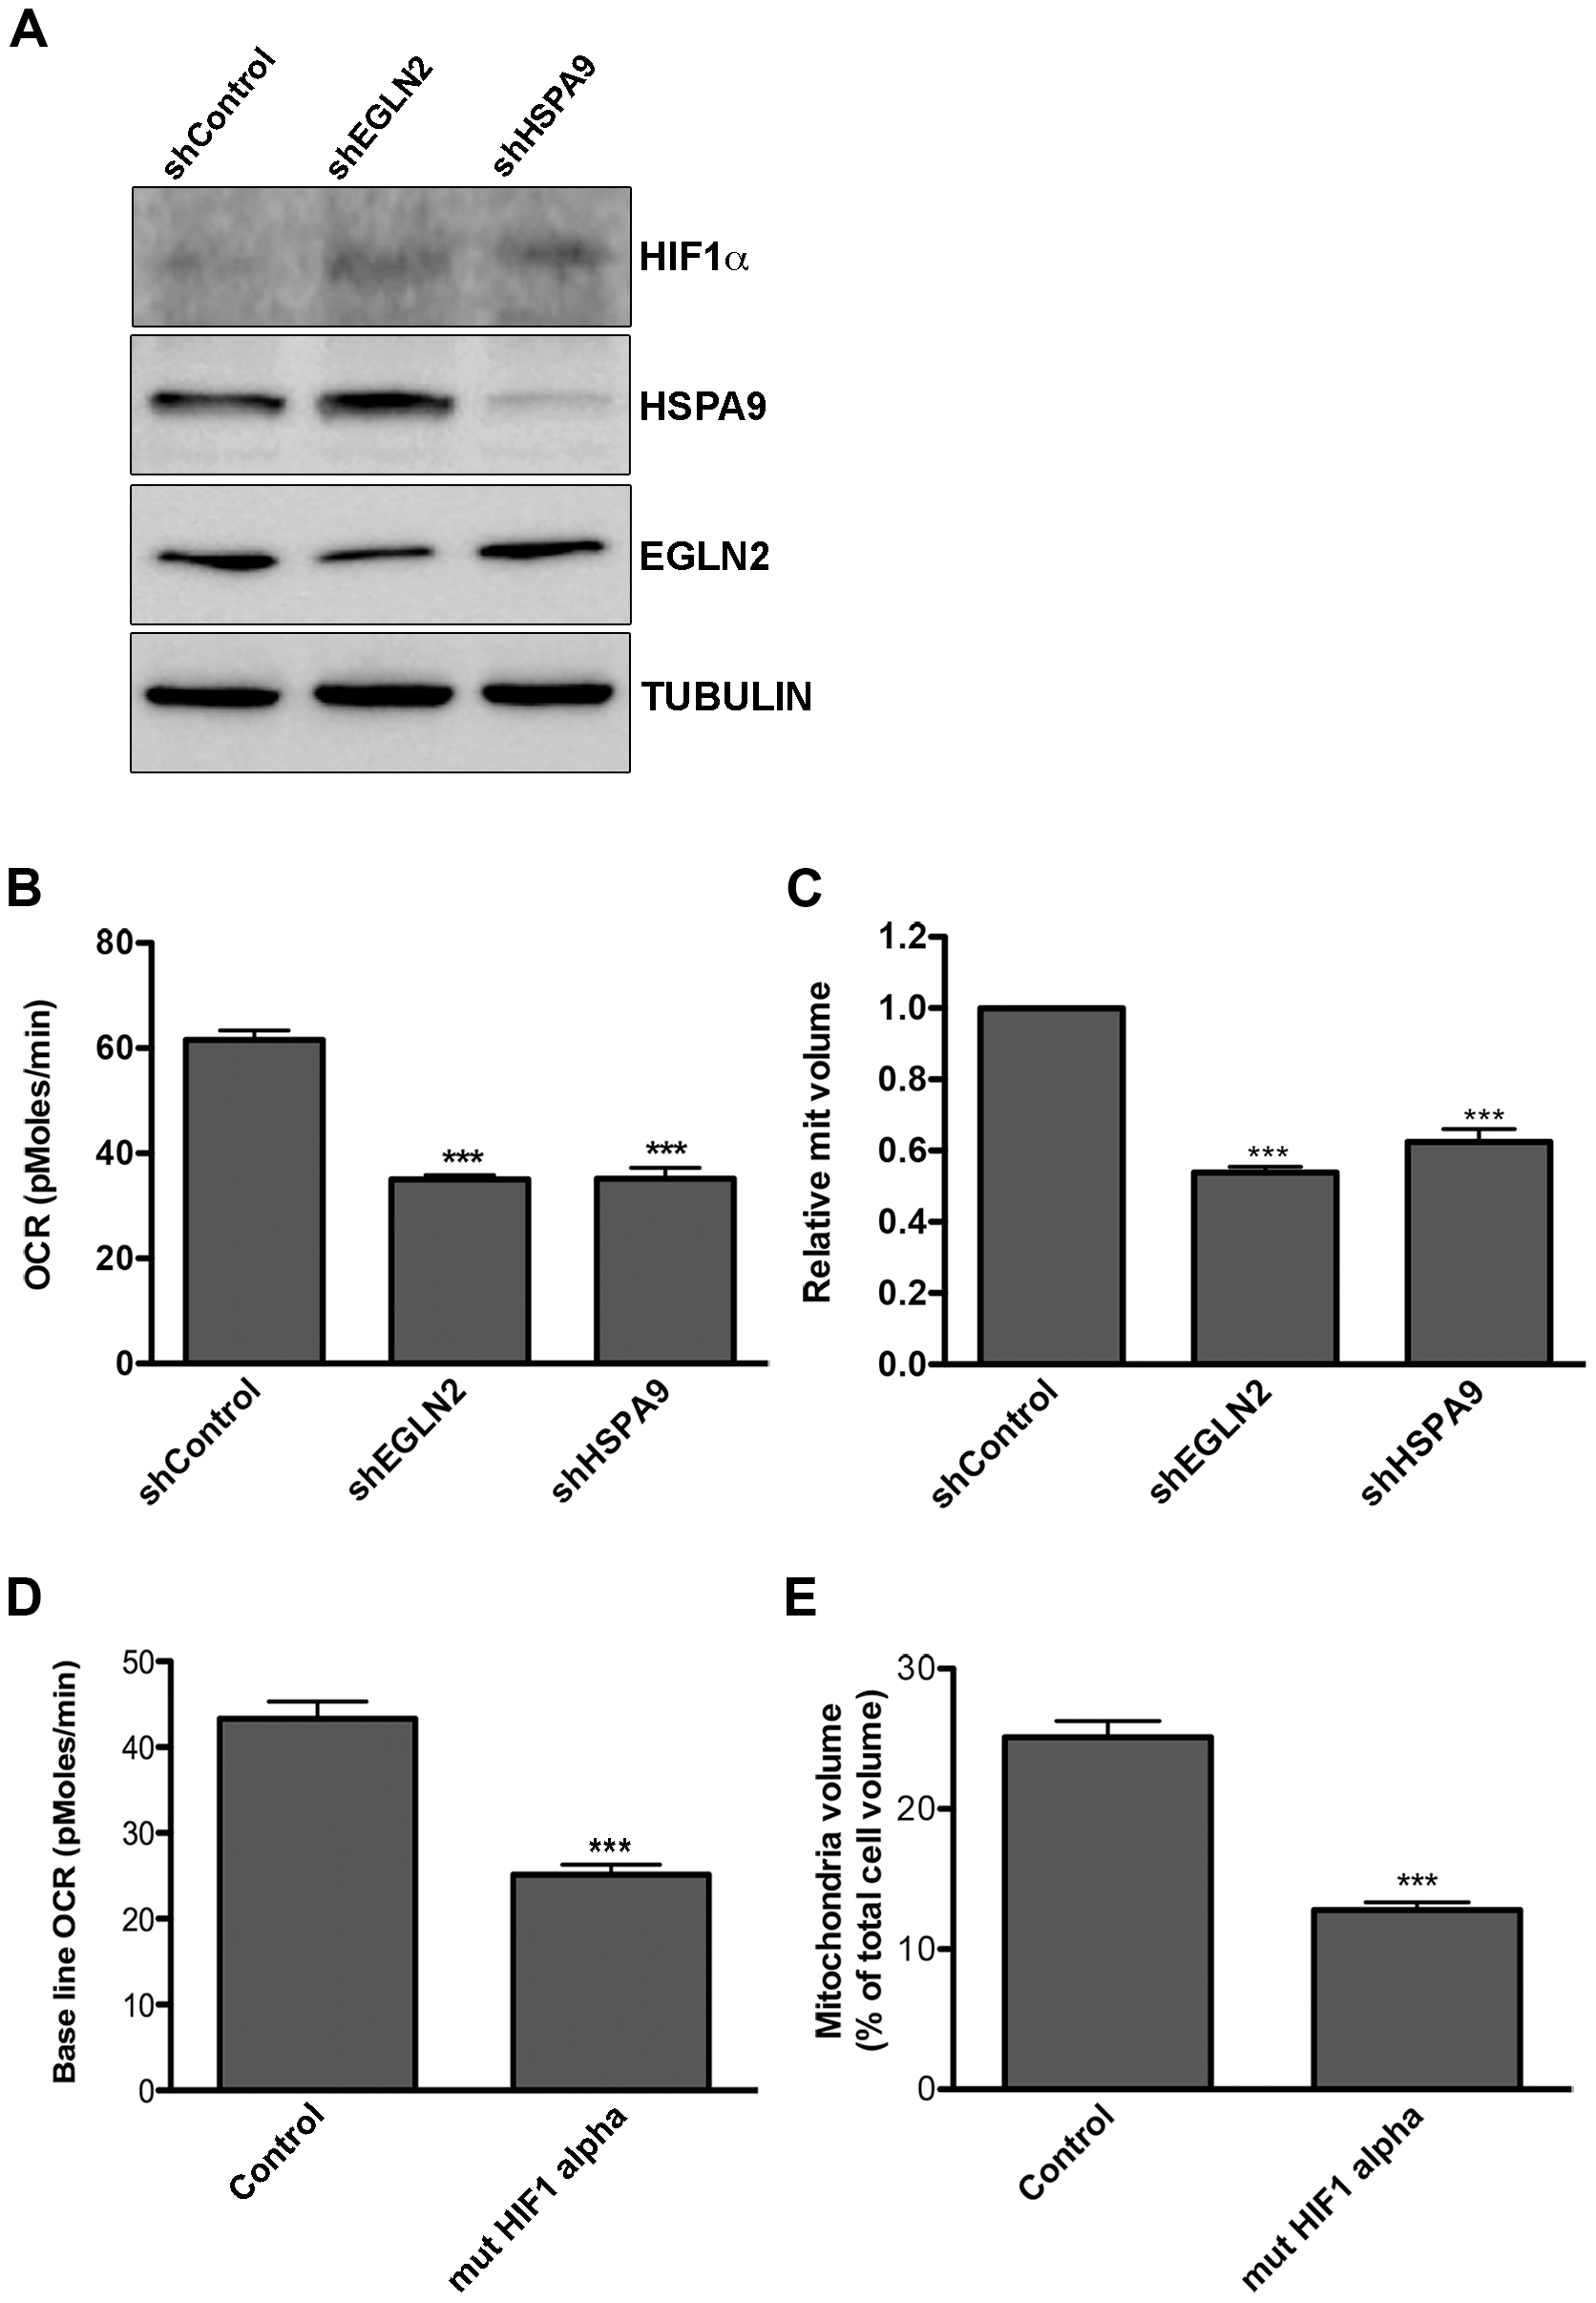 Down regulation of EGLN2 and HSPA9 phenocopies miRNA cluster expression.